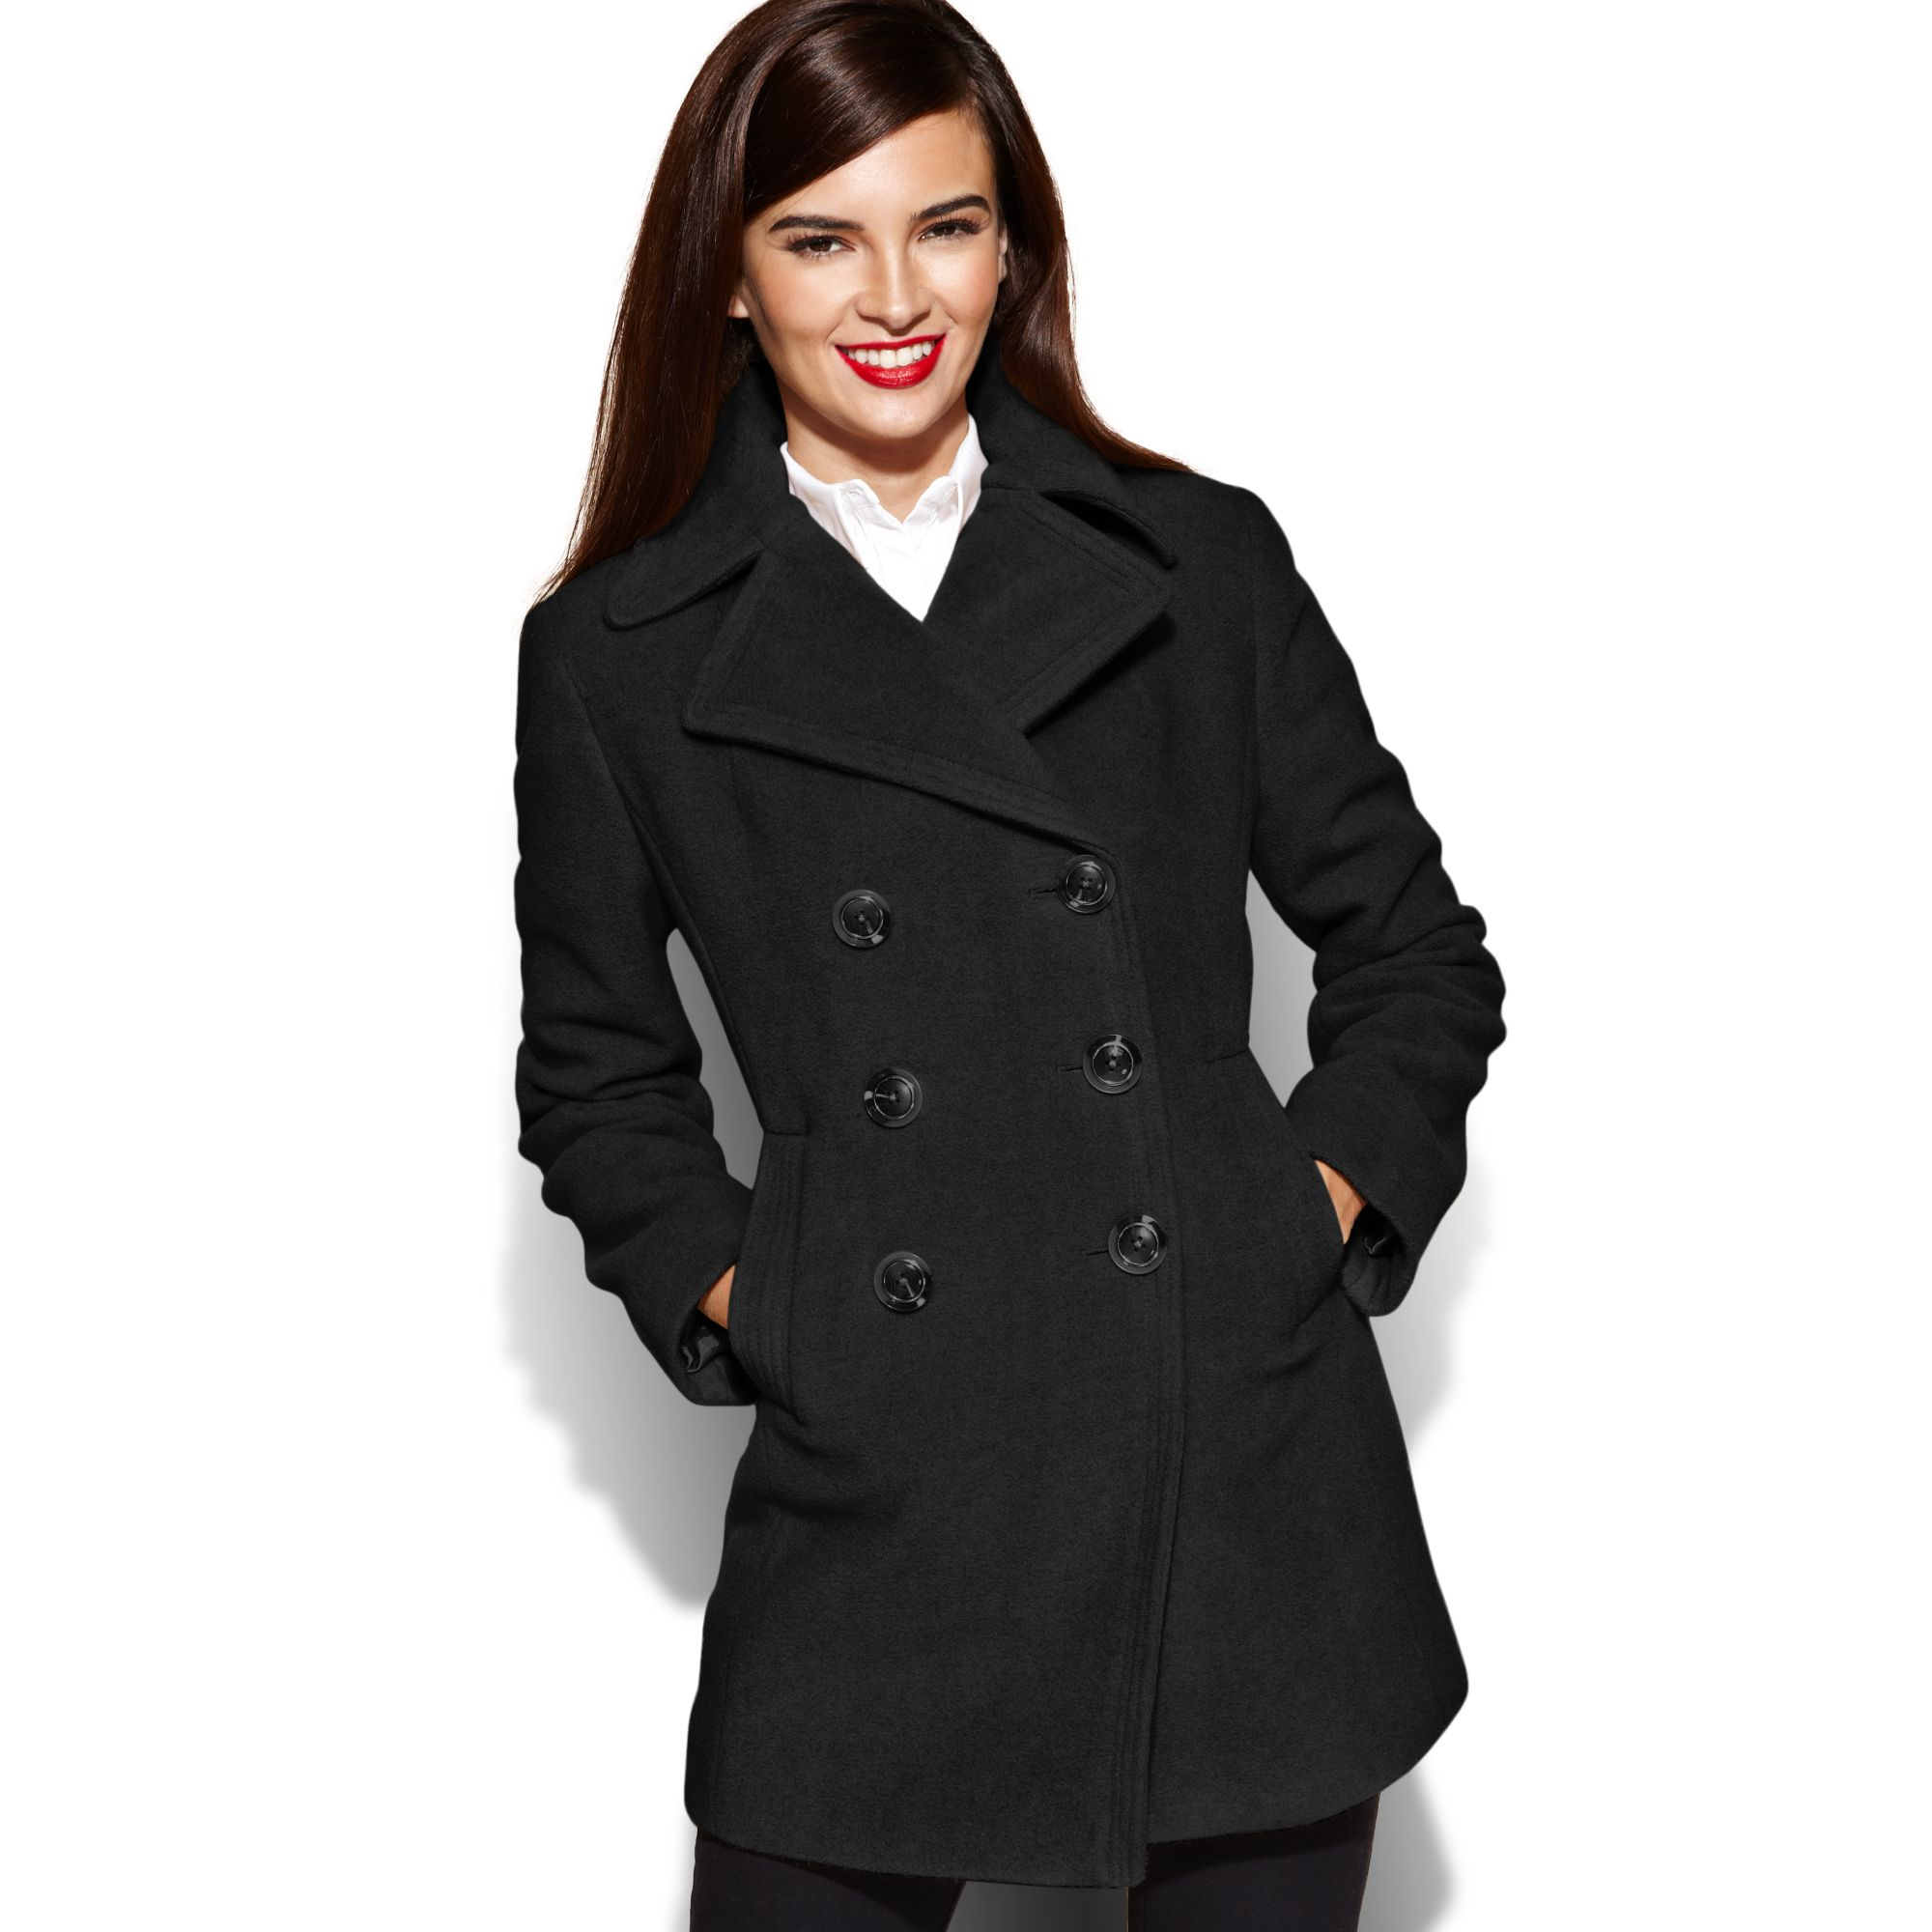 Long Double Breasted Wool Coat: Coat provides gorgeous shape thanks to the A-line silhouette and front and back jomp16.tk-button closure with concealed interior button for a better fit. Side slit pockets (sewn closed like all finely tailored garments).